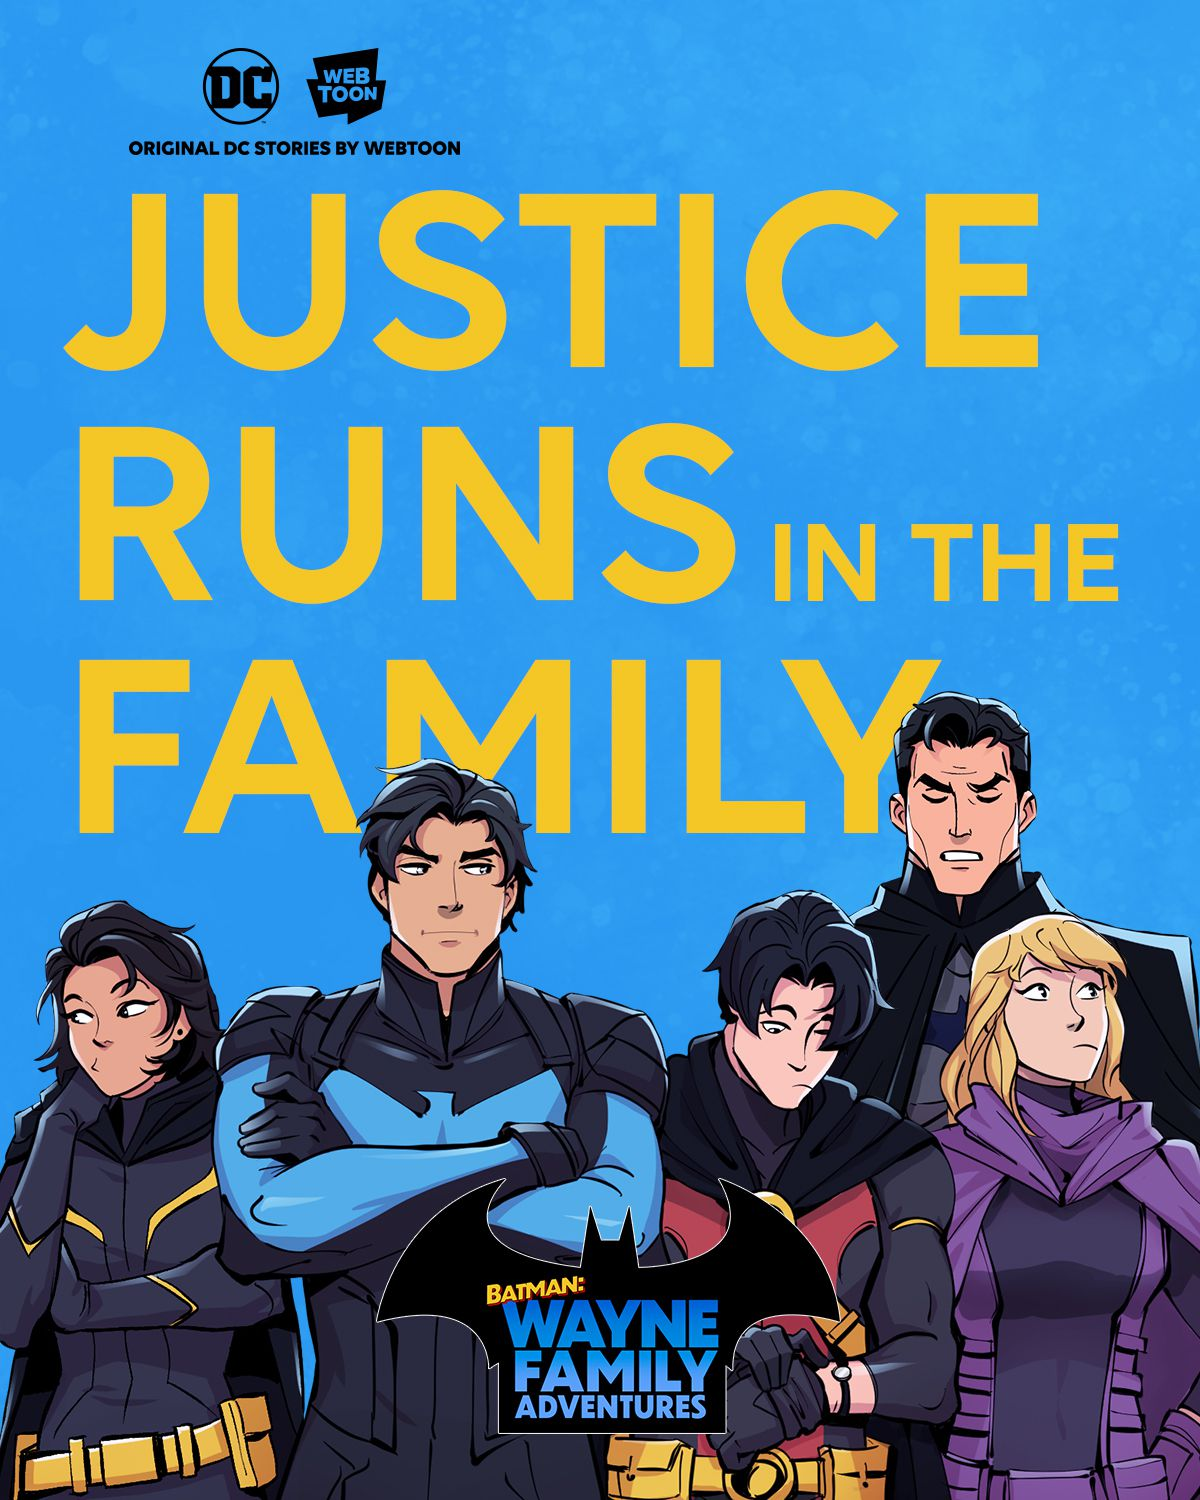 """Cassandra Cain, Nightwing/Dick Grayson, Robin/Tim Drake, and Spoiler/Stephanie Brown look bored as Batman talks sternly behind them. A tagline reads """"Justice runs in the family"""" in promotional art for Batman: Wayne Family Adventures on Webtoon."""